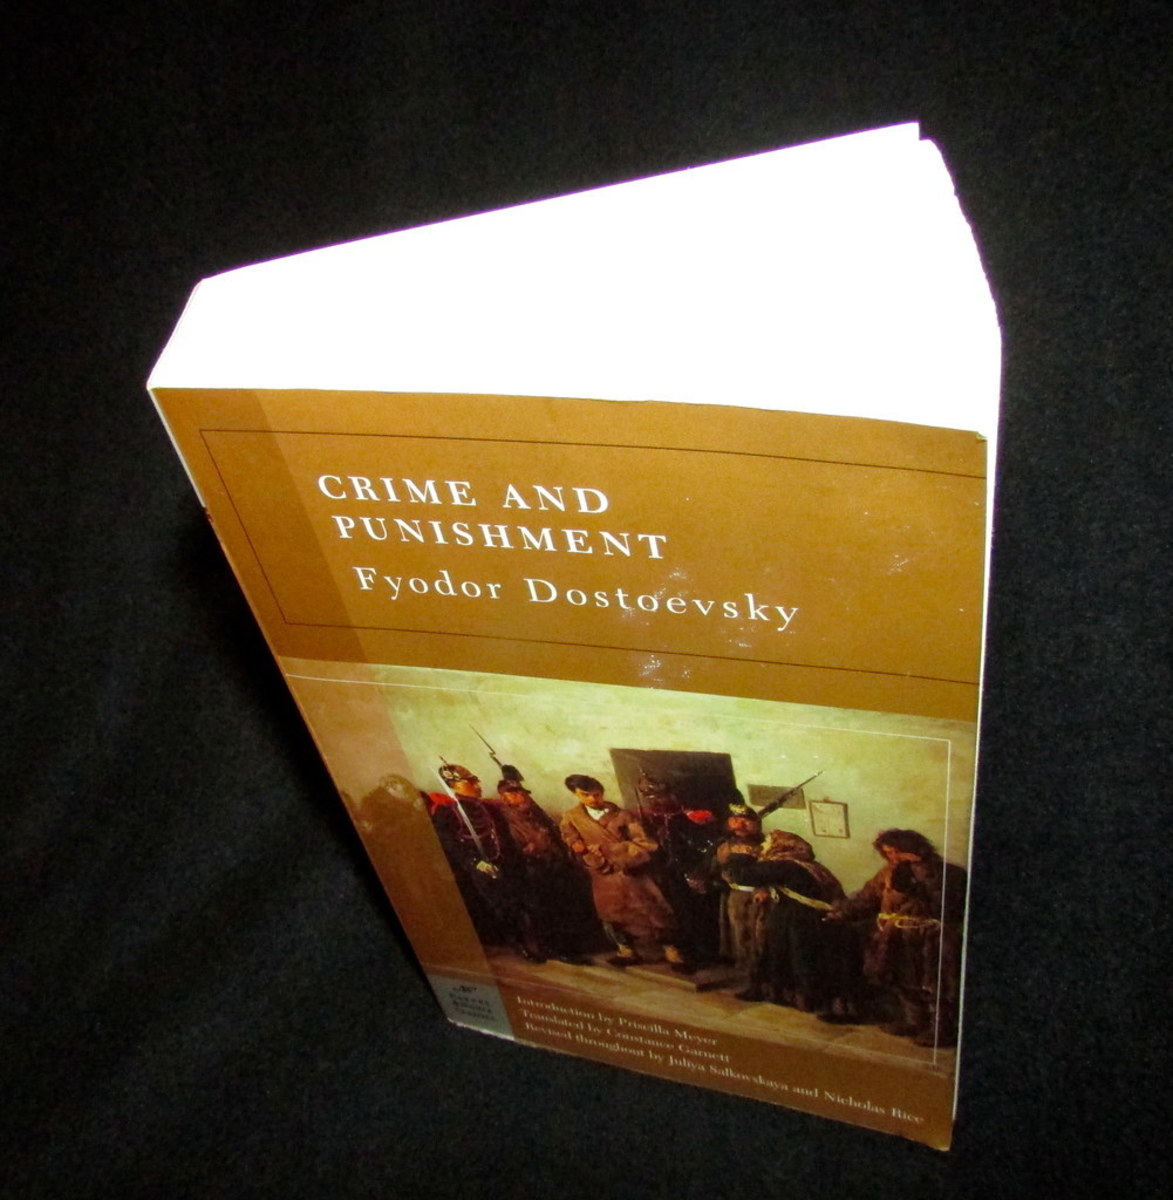 Image of the book